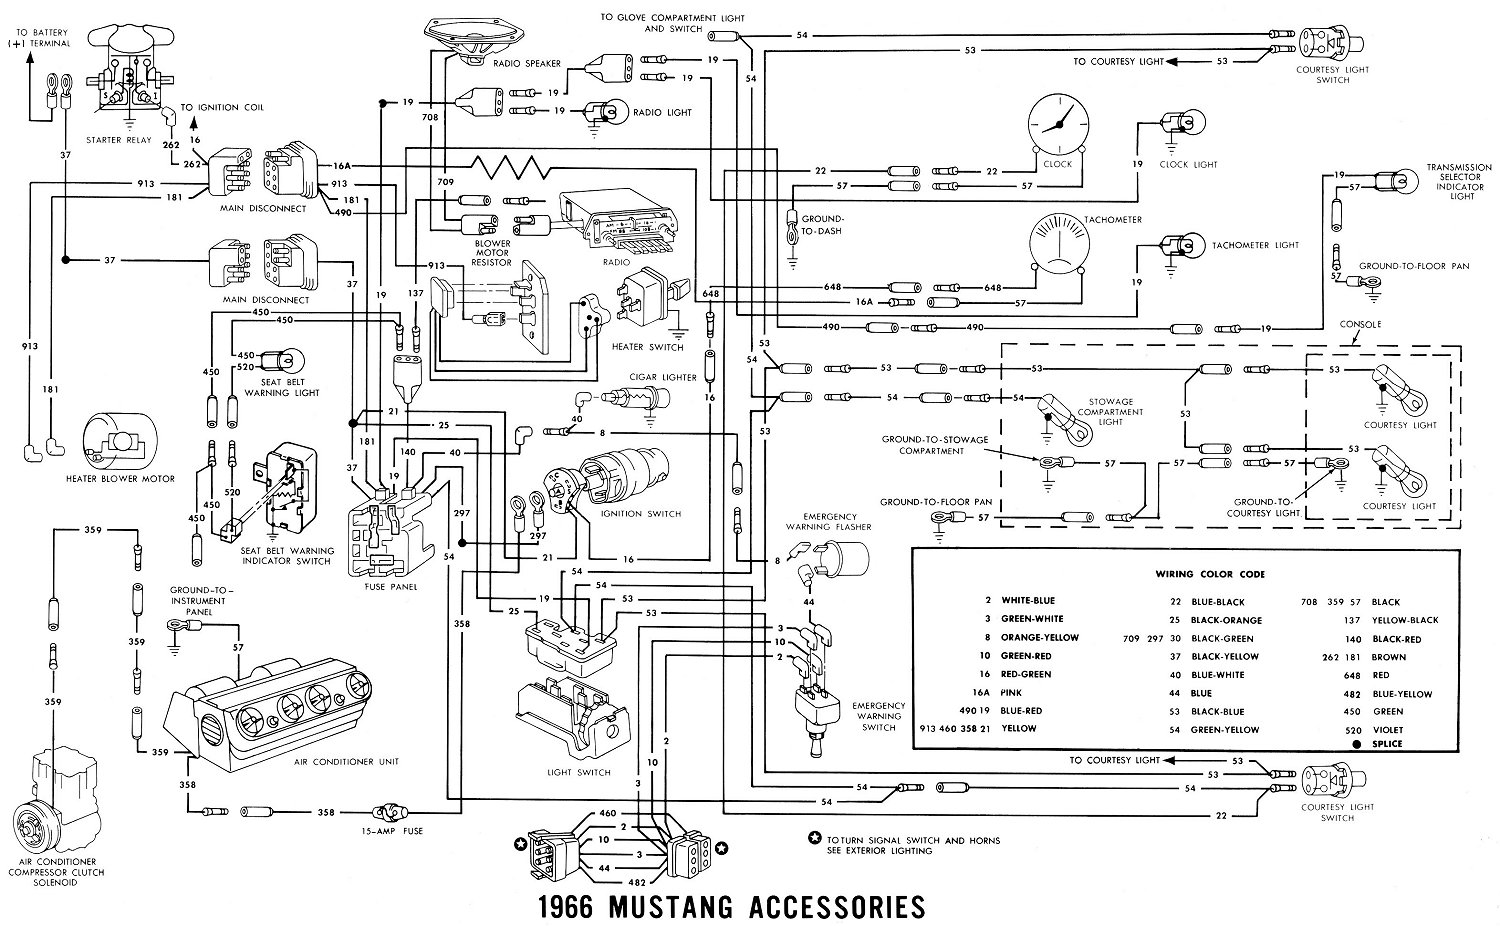 66acces1 1966 mustang wiring diagrams average joe restoration ford ignition wiring diagram at nearapp.co